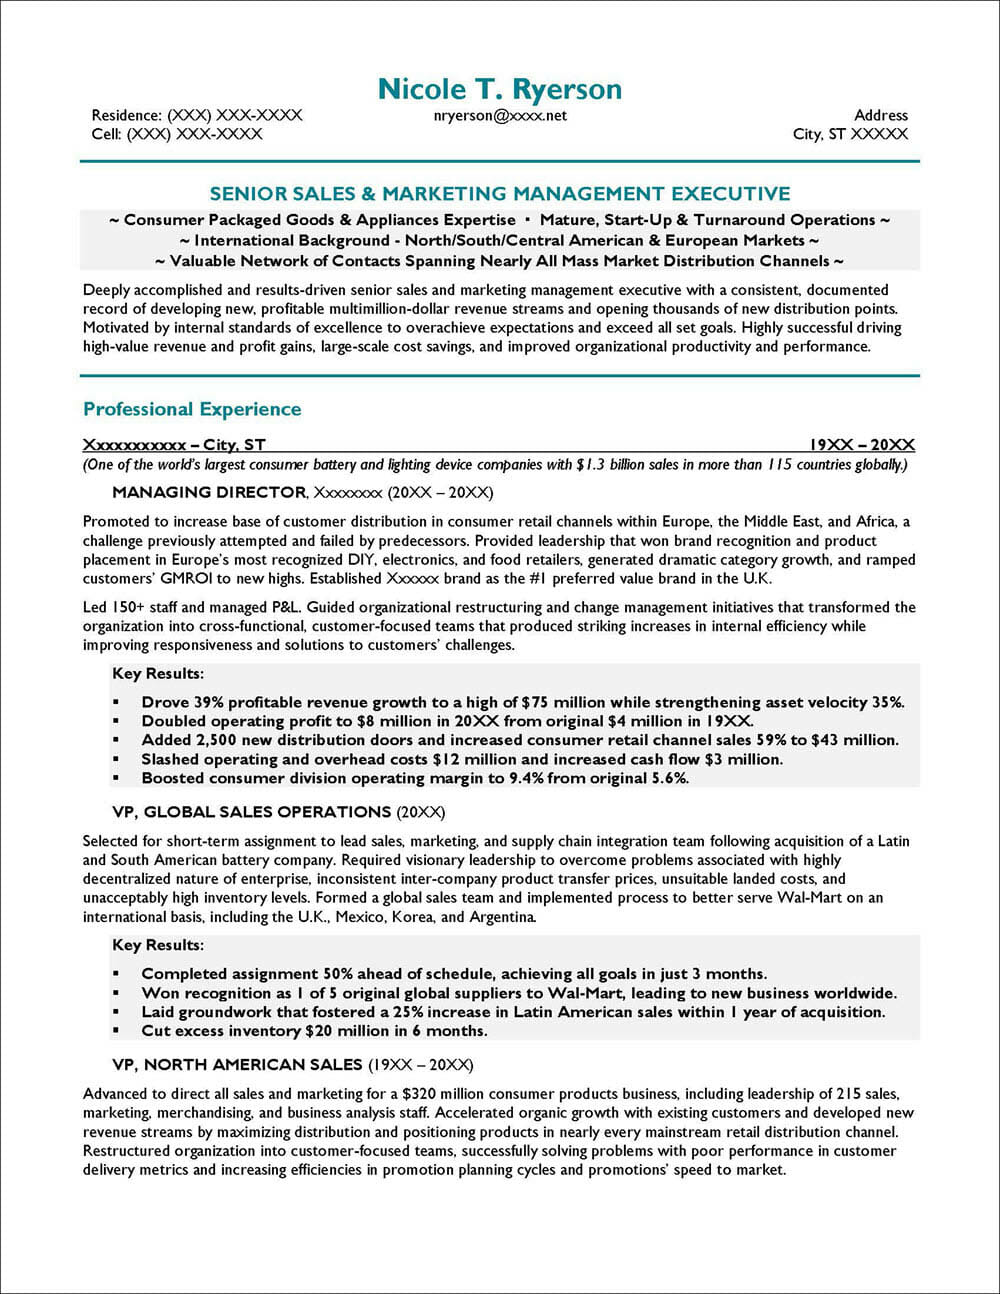 Resume Objective Examples Distinctive Career Services